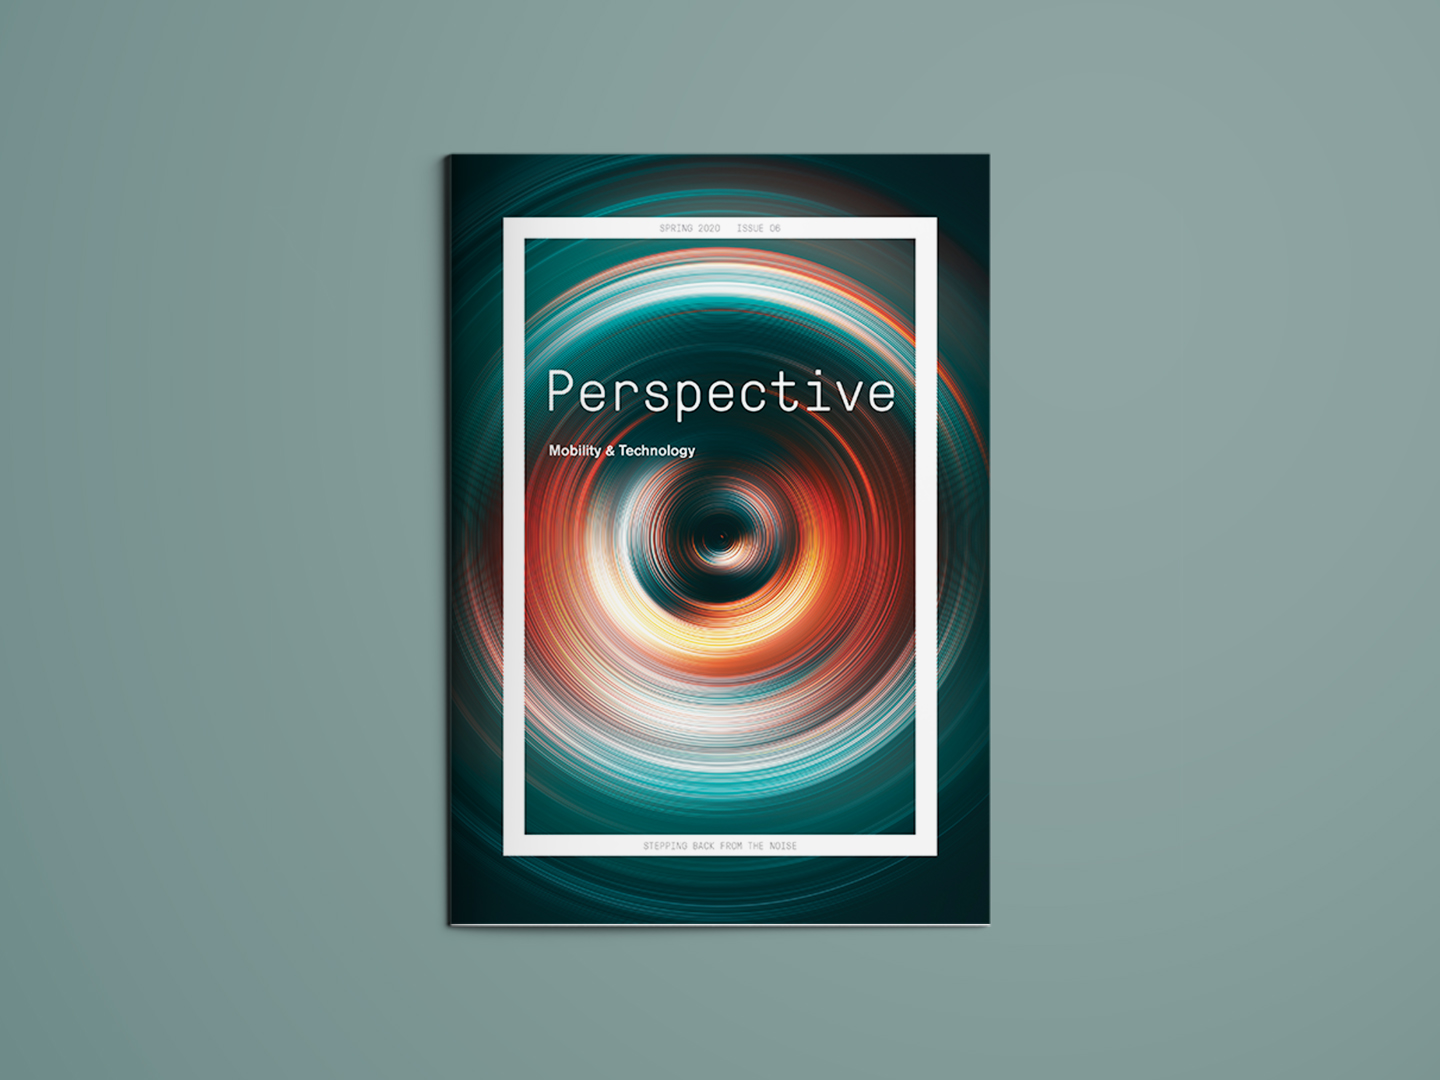 Perspectives v2 M&T